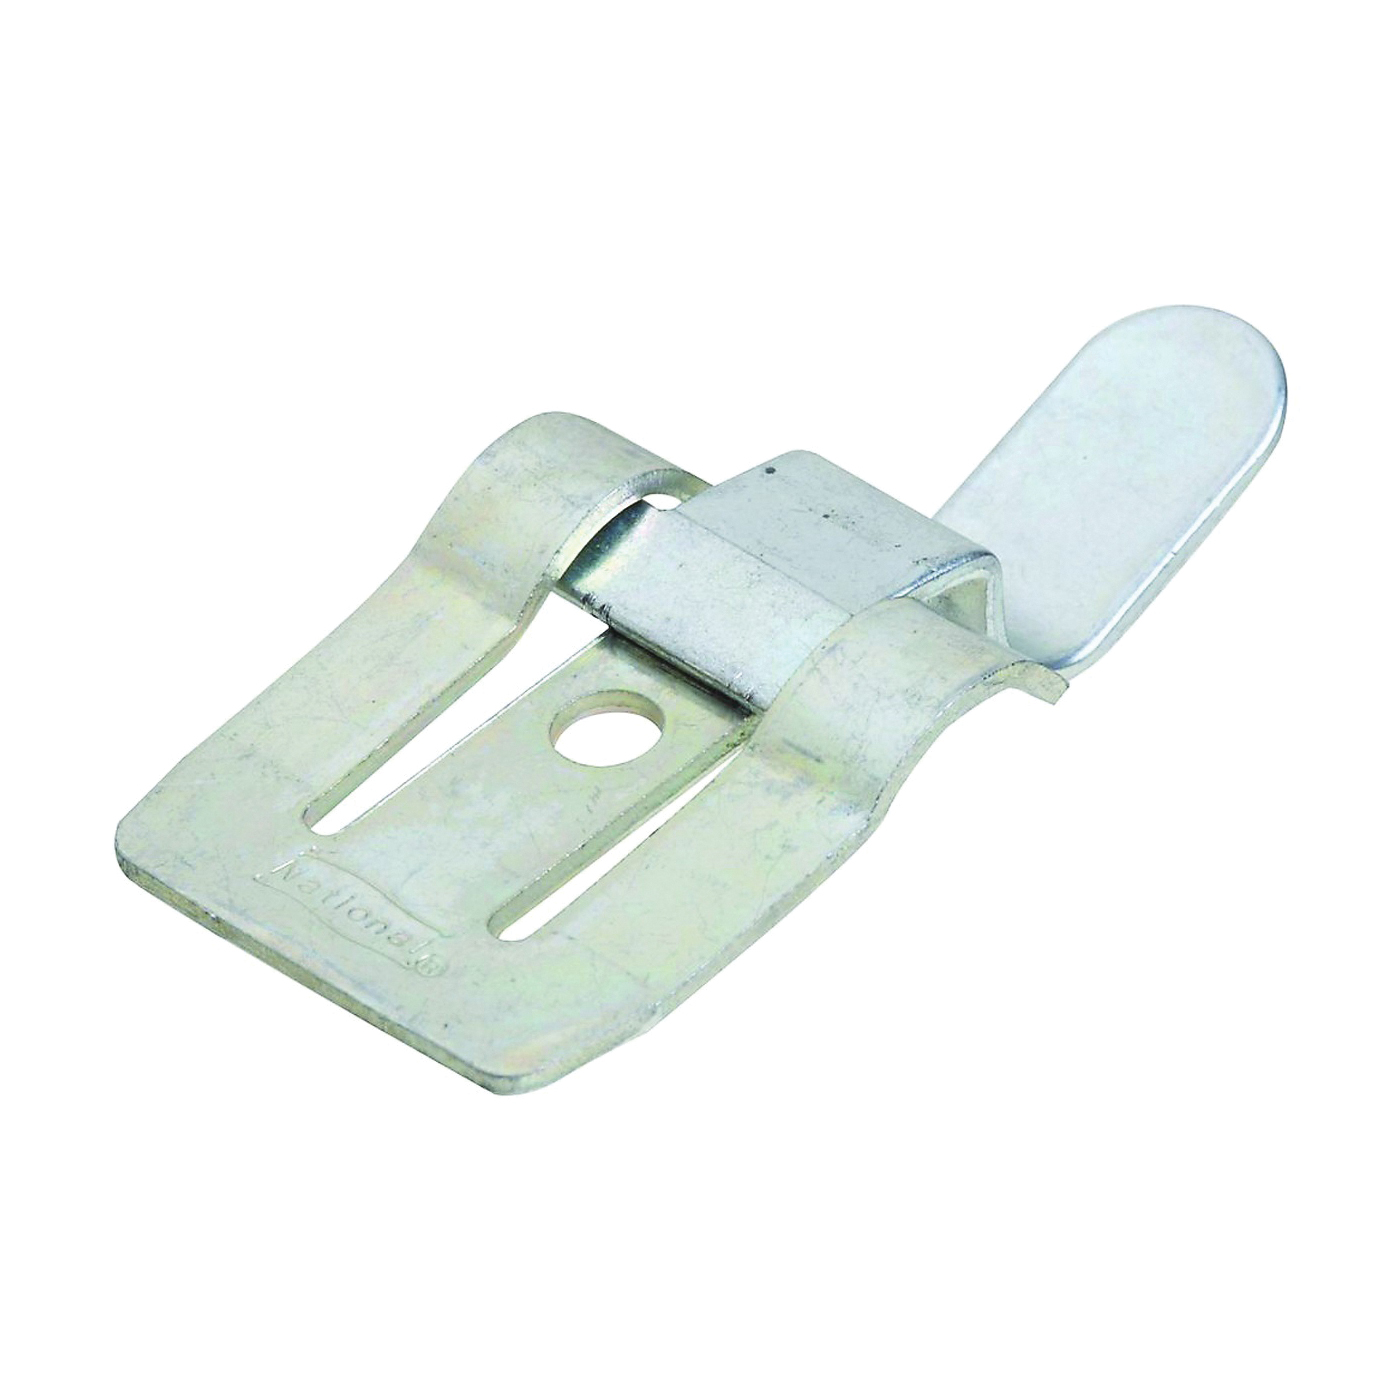 Picture of National Hardware V82 Series N192-179 Snap Fastener, Steel, Zinc